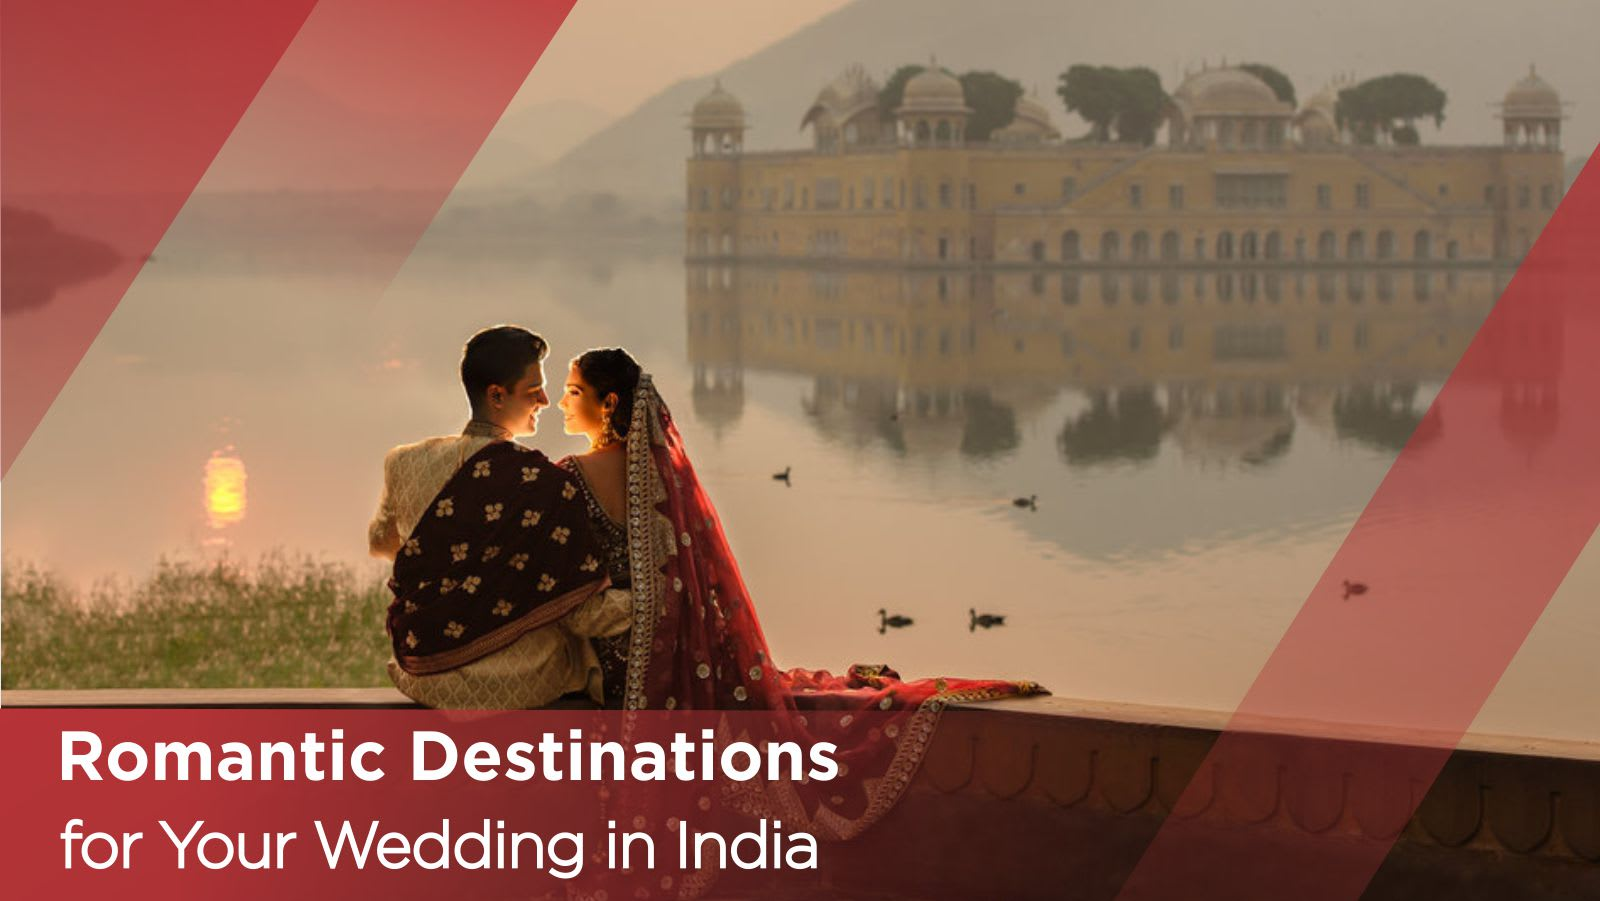 top 5 Romantic Destinations for Your Wedding in India, Dreamy Destinations for Your Wedding in India, best wedding locations in india, wedding, most romantic wedding locations, destination wedding in india, indian wedding destinations, wedding celebrations, choreo n concept, weddings, grand destination weddings in india, goa weddings, kerela weddings, Jim Corbett weddings, Mussoorie weddings, Udaipur weddings, Kerala Wedding Destinations, Goa destination wedding, Mussoorie wedding destination, Udaipur destination wedding